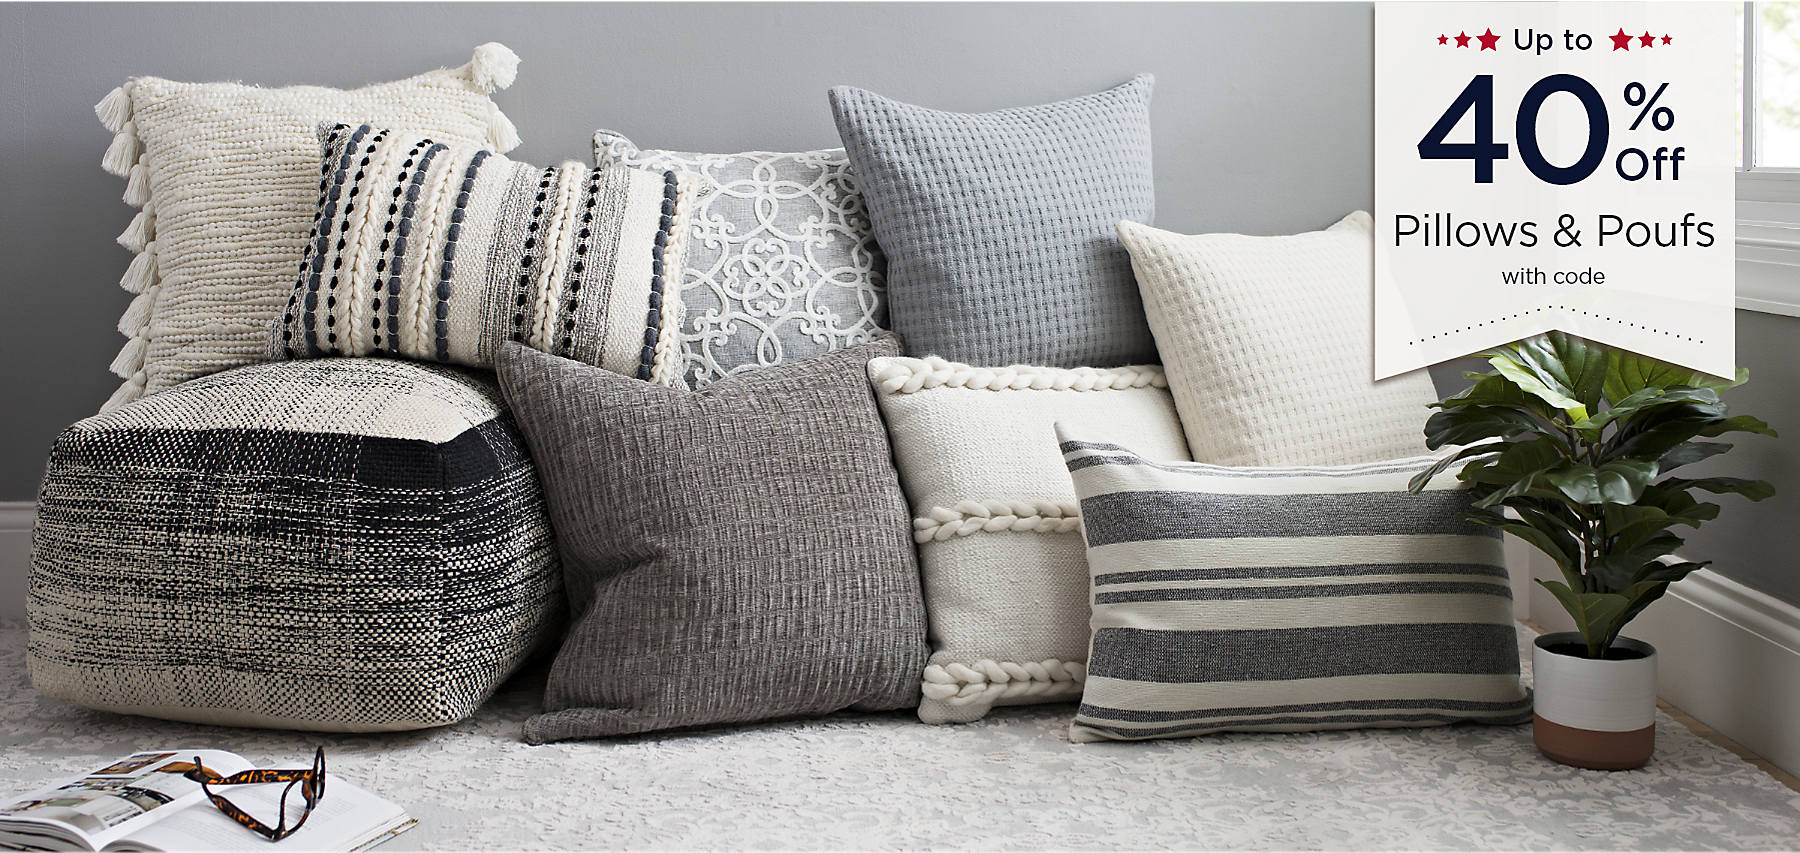 Up to 40% Off Pillows & Poufs with code